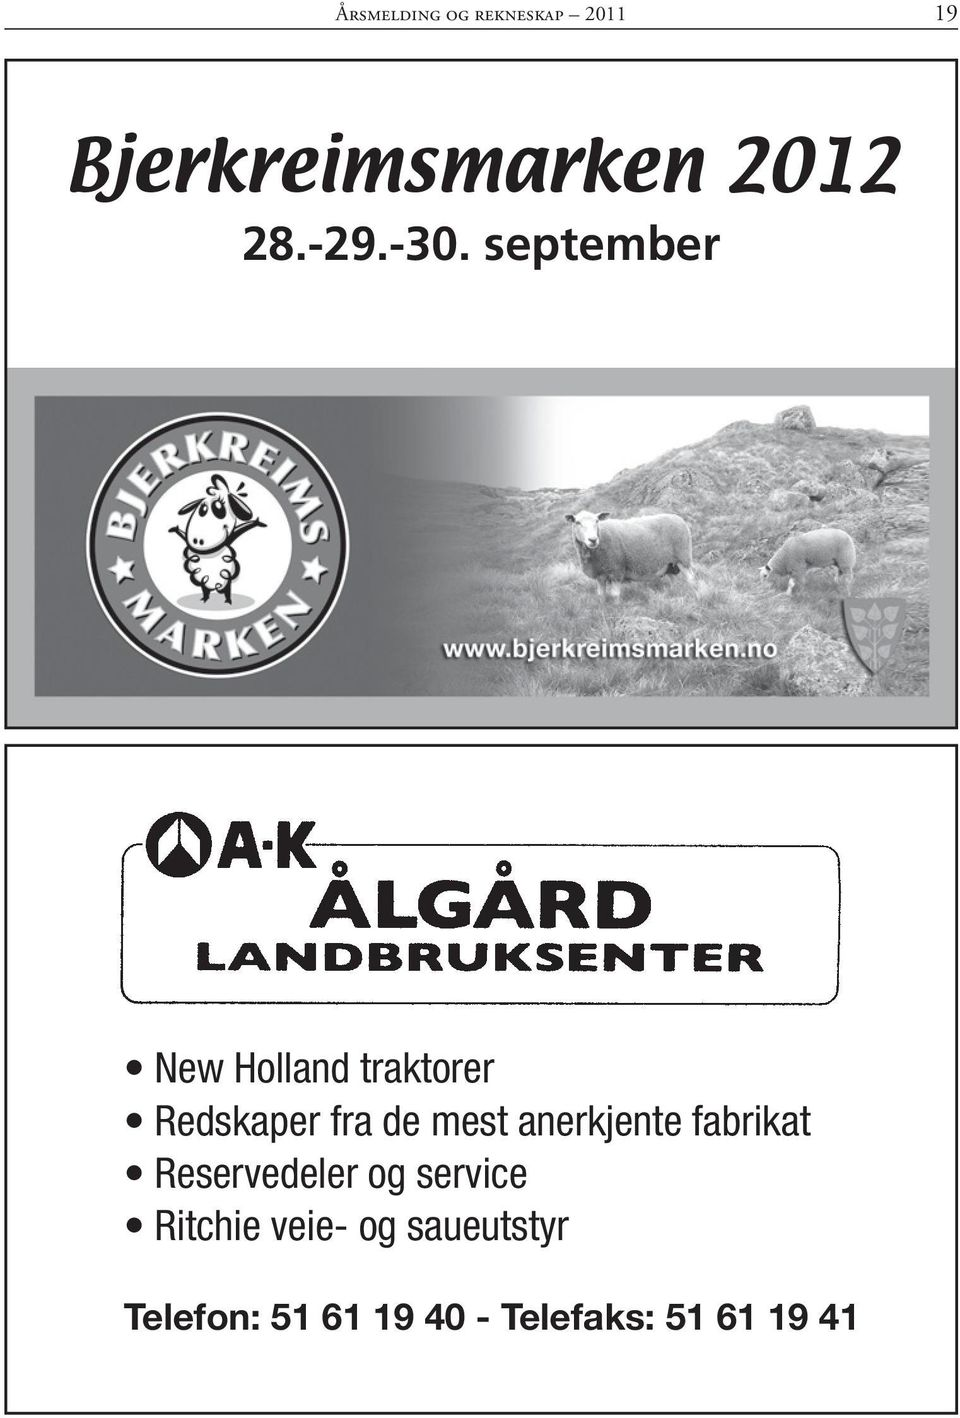 september New Holland traktorer Redskaper fra de mest